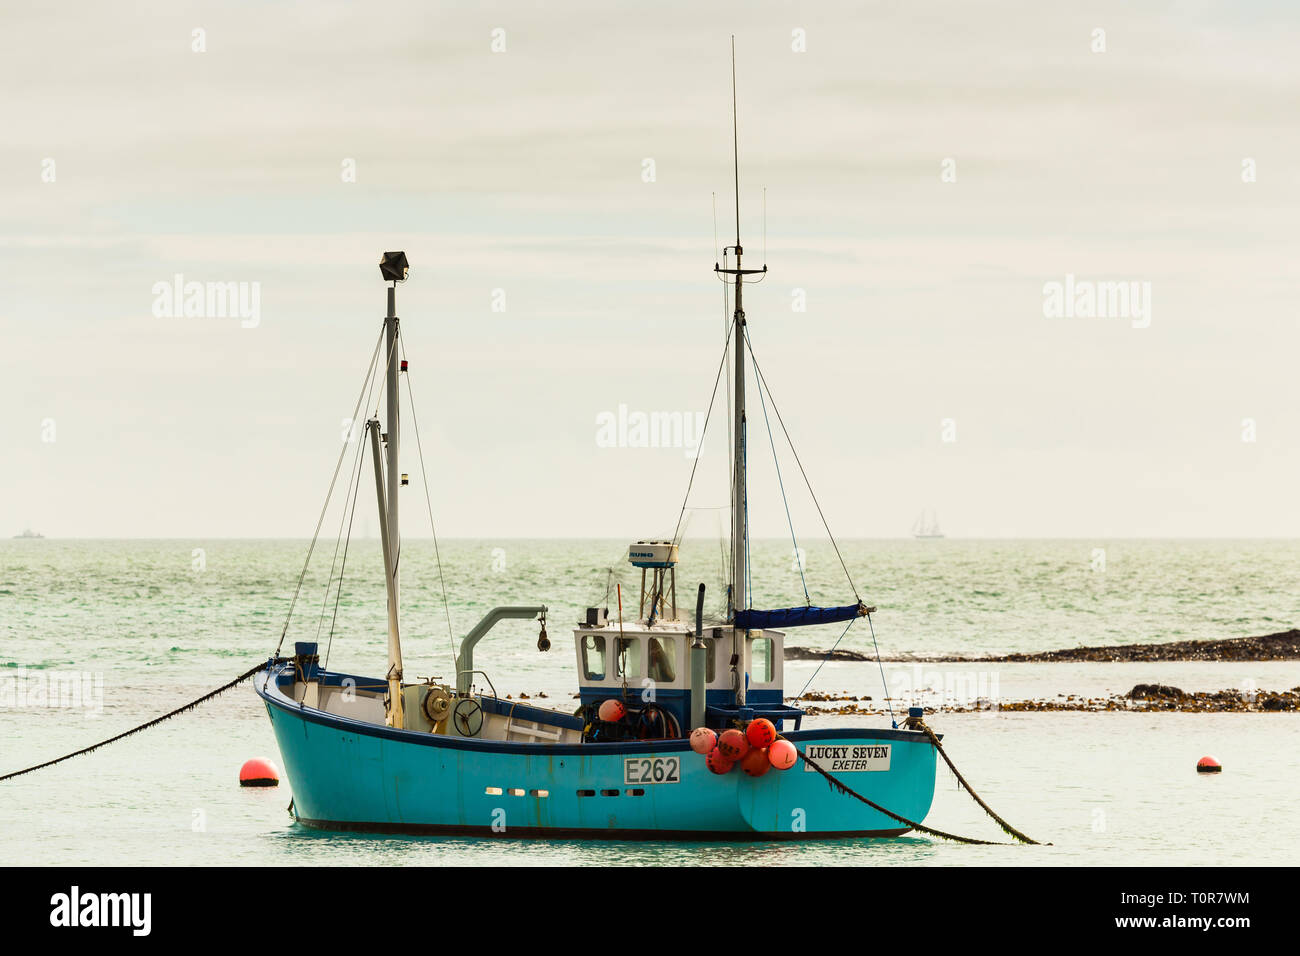 Looking out to sea at Lulworth Cove a fishing vessel is anchored in the Bay. - Stock Image